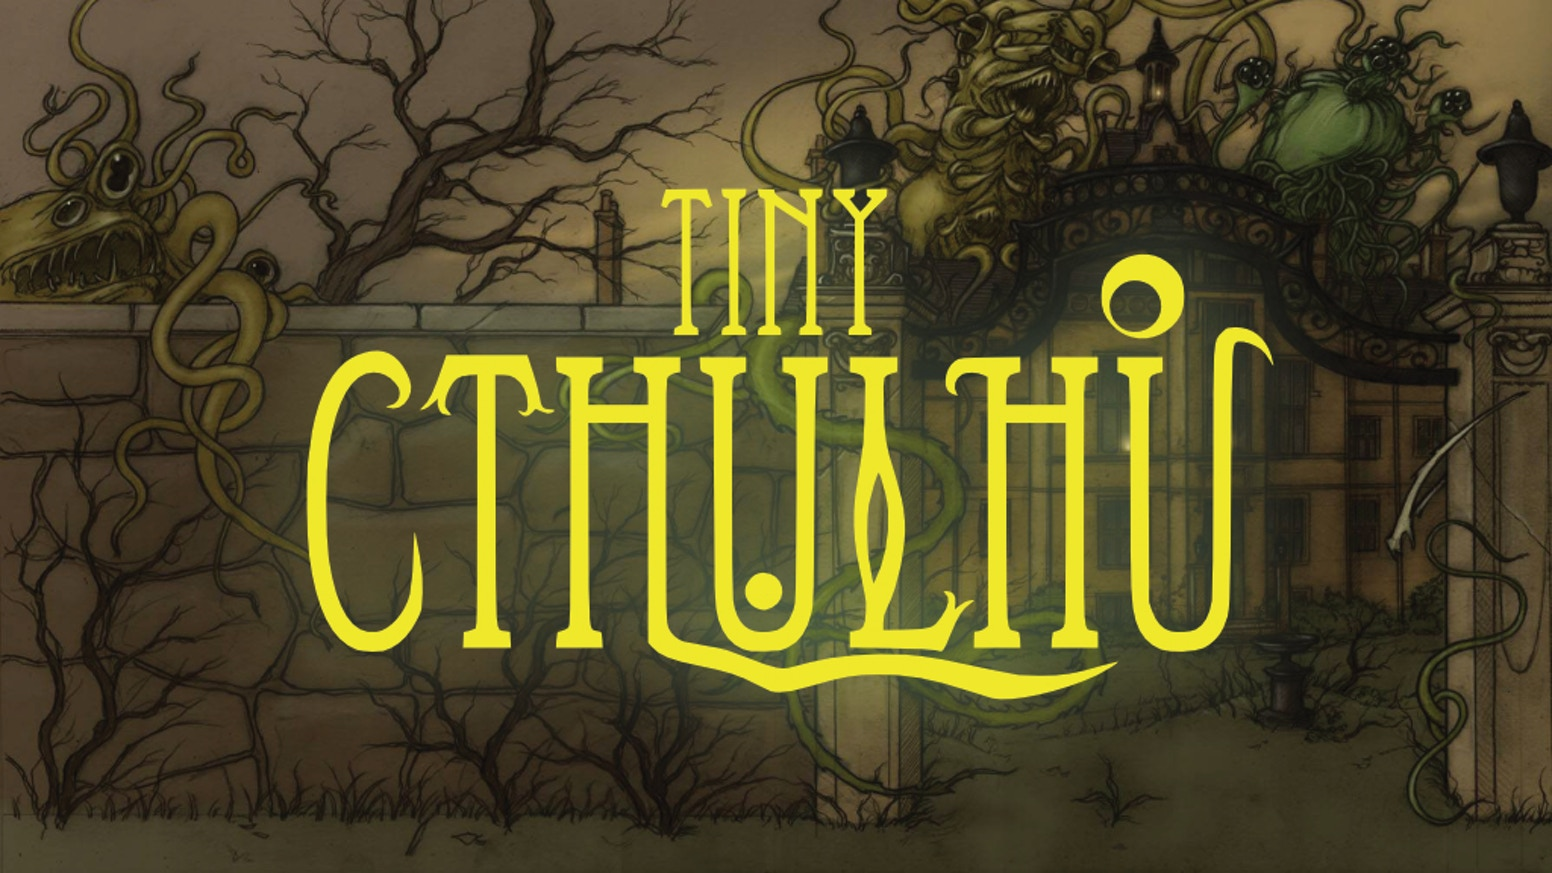 Cosmic Horror meets the minimalist TinyD6 RPG system in Tiny Cthulhu!